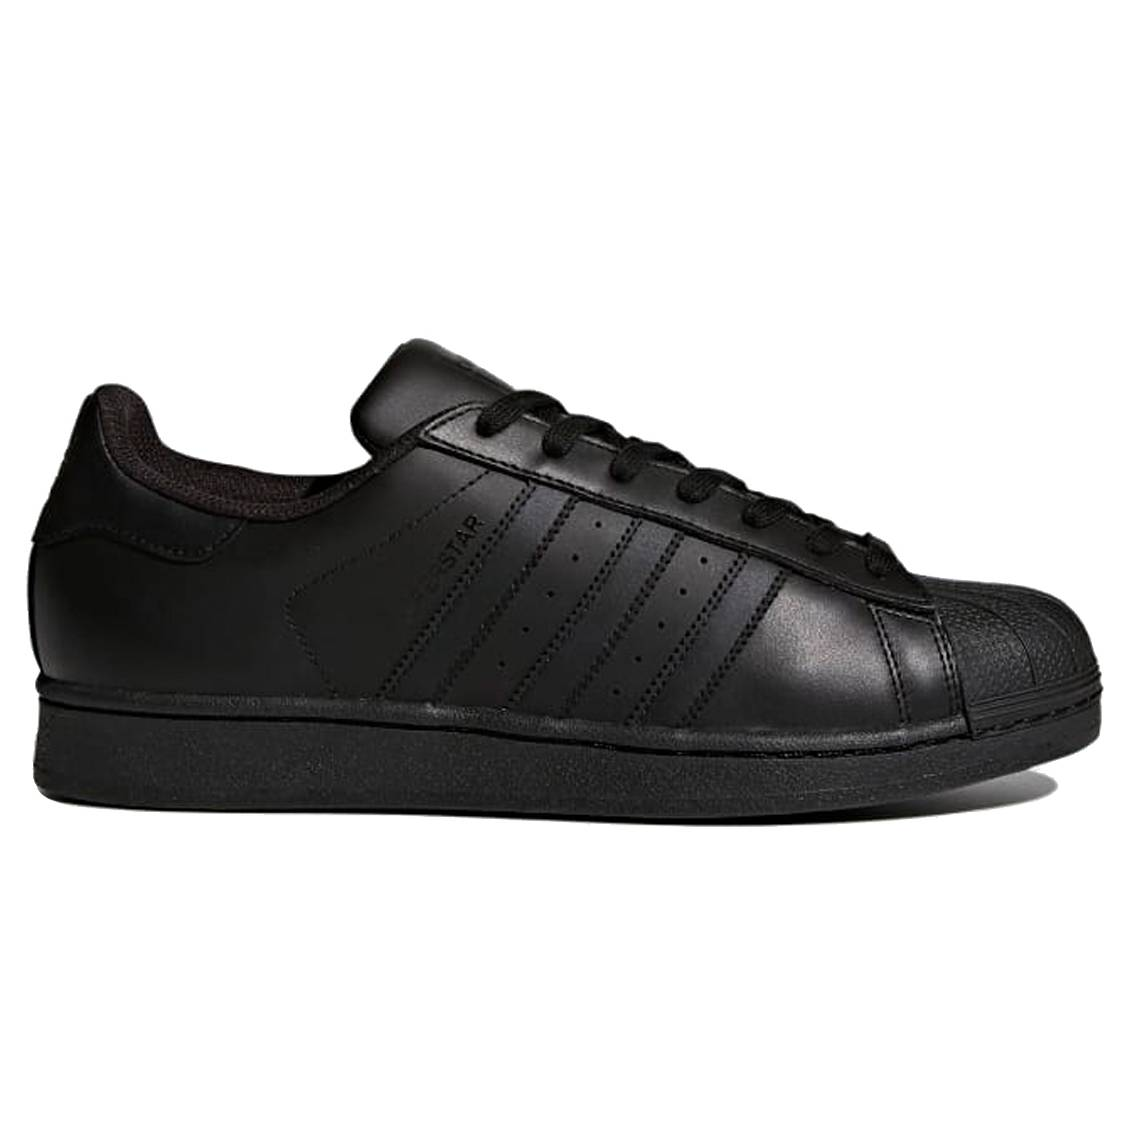 Baskets Adidas Superstar en cuir enduit noir ...